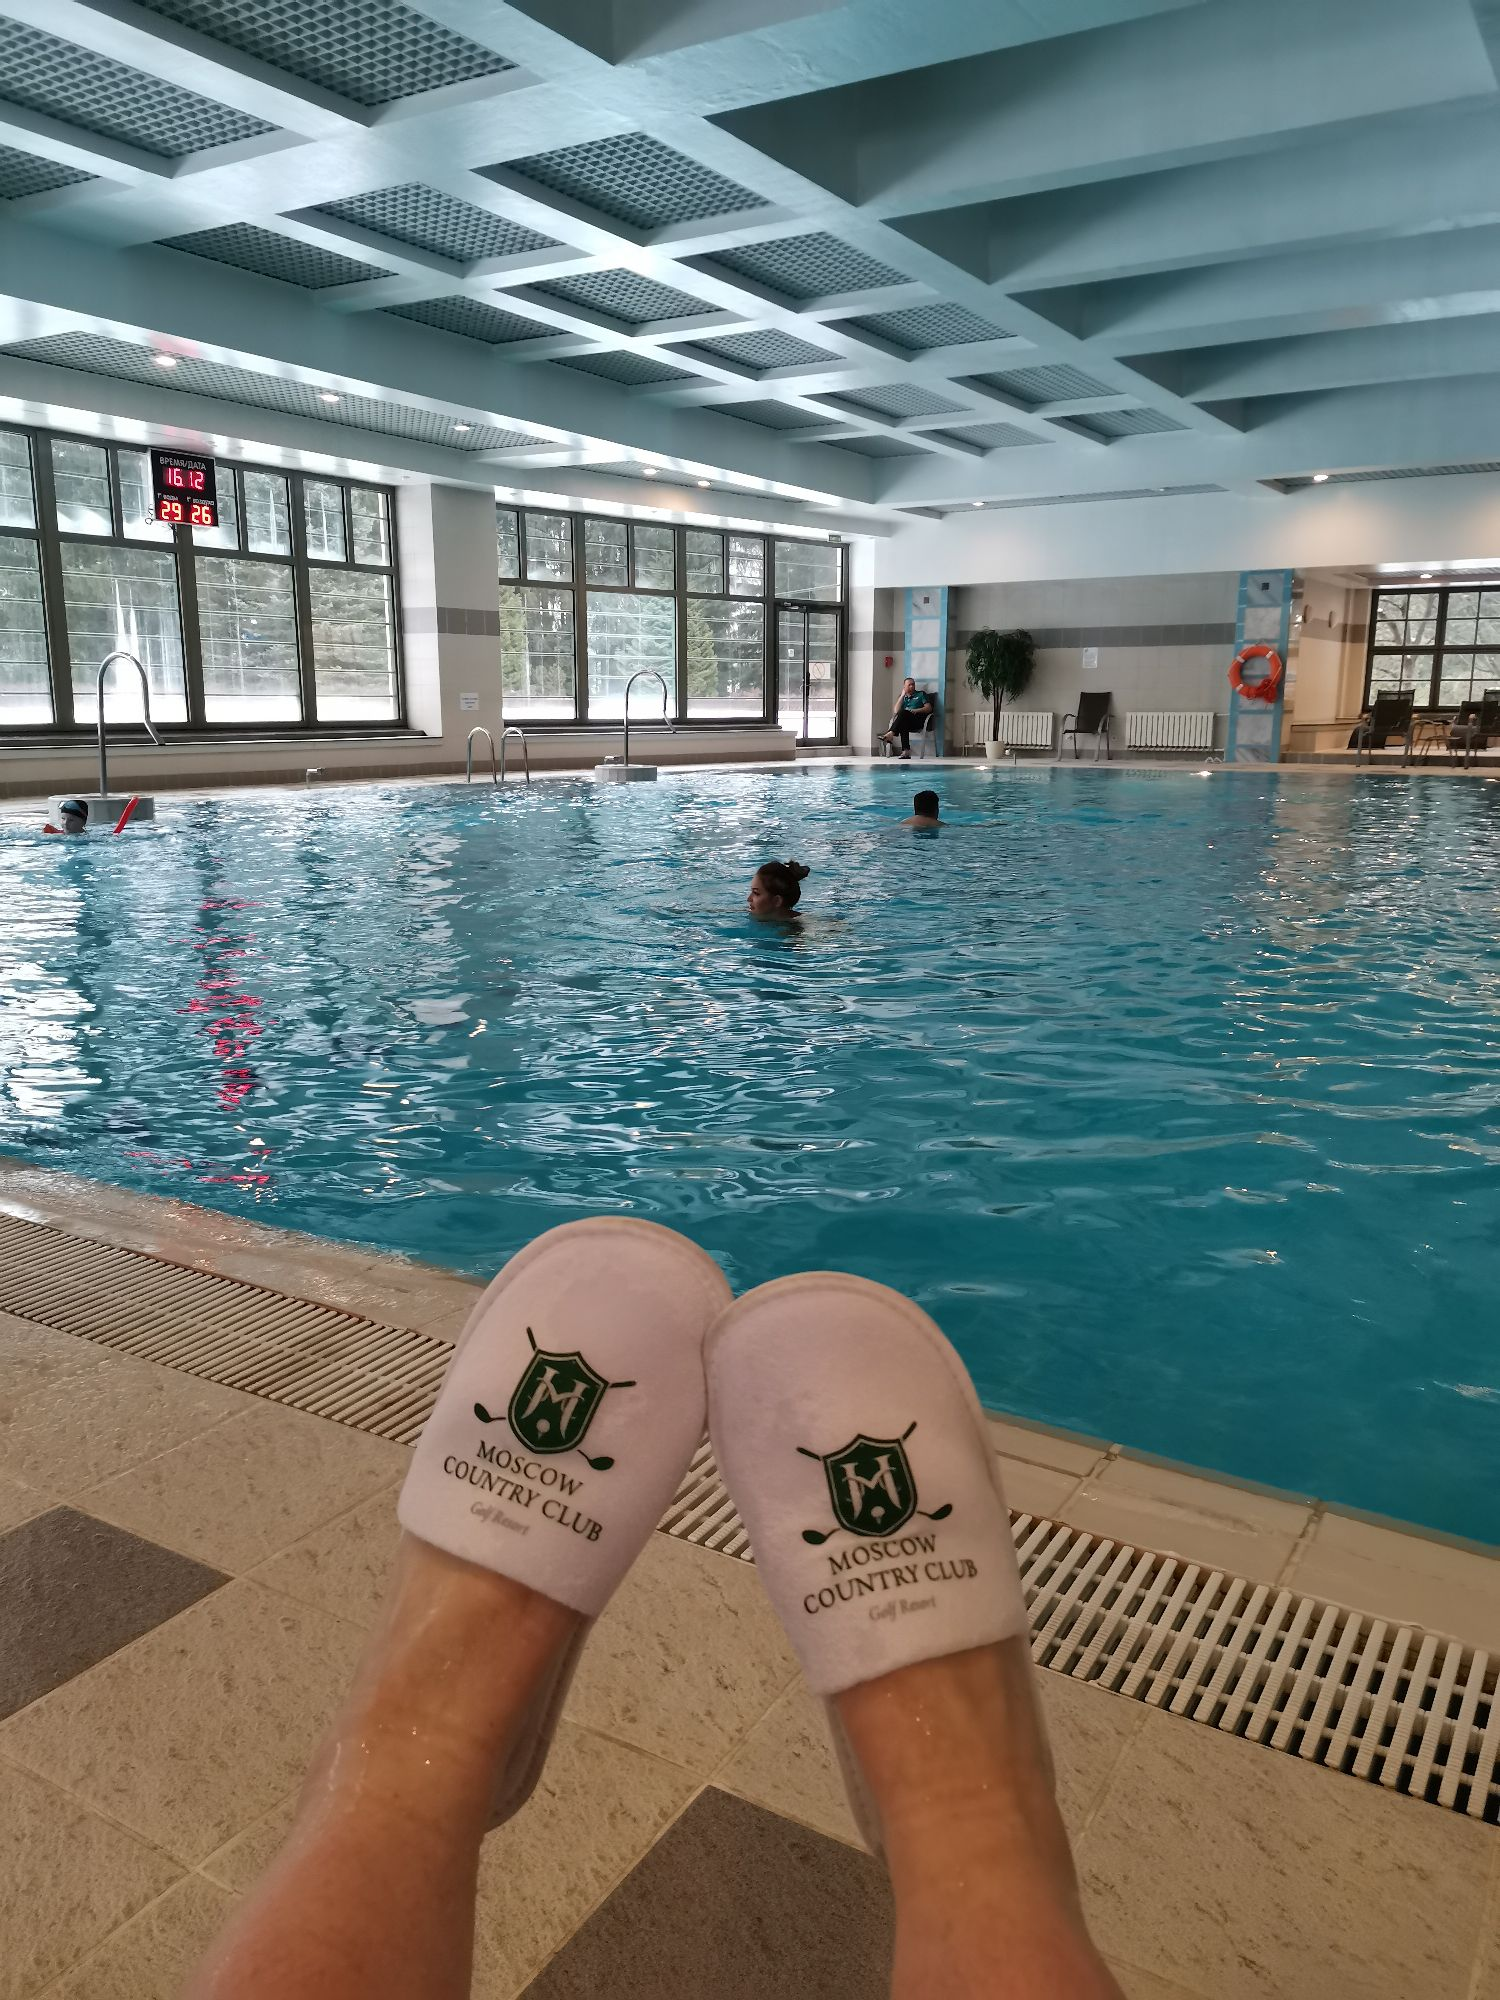 Moscow country club спа комплекс